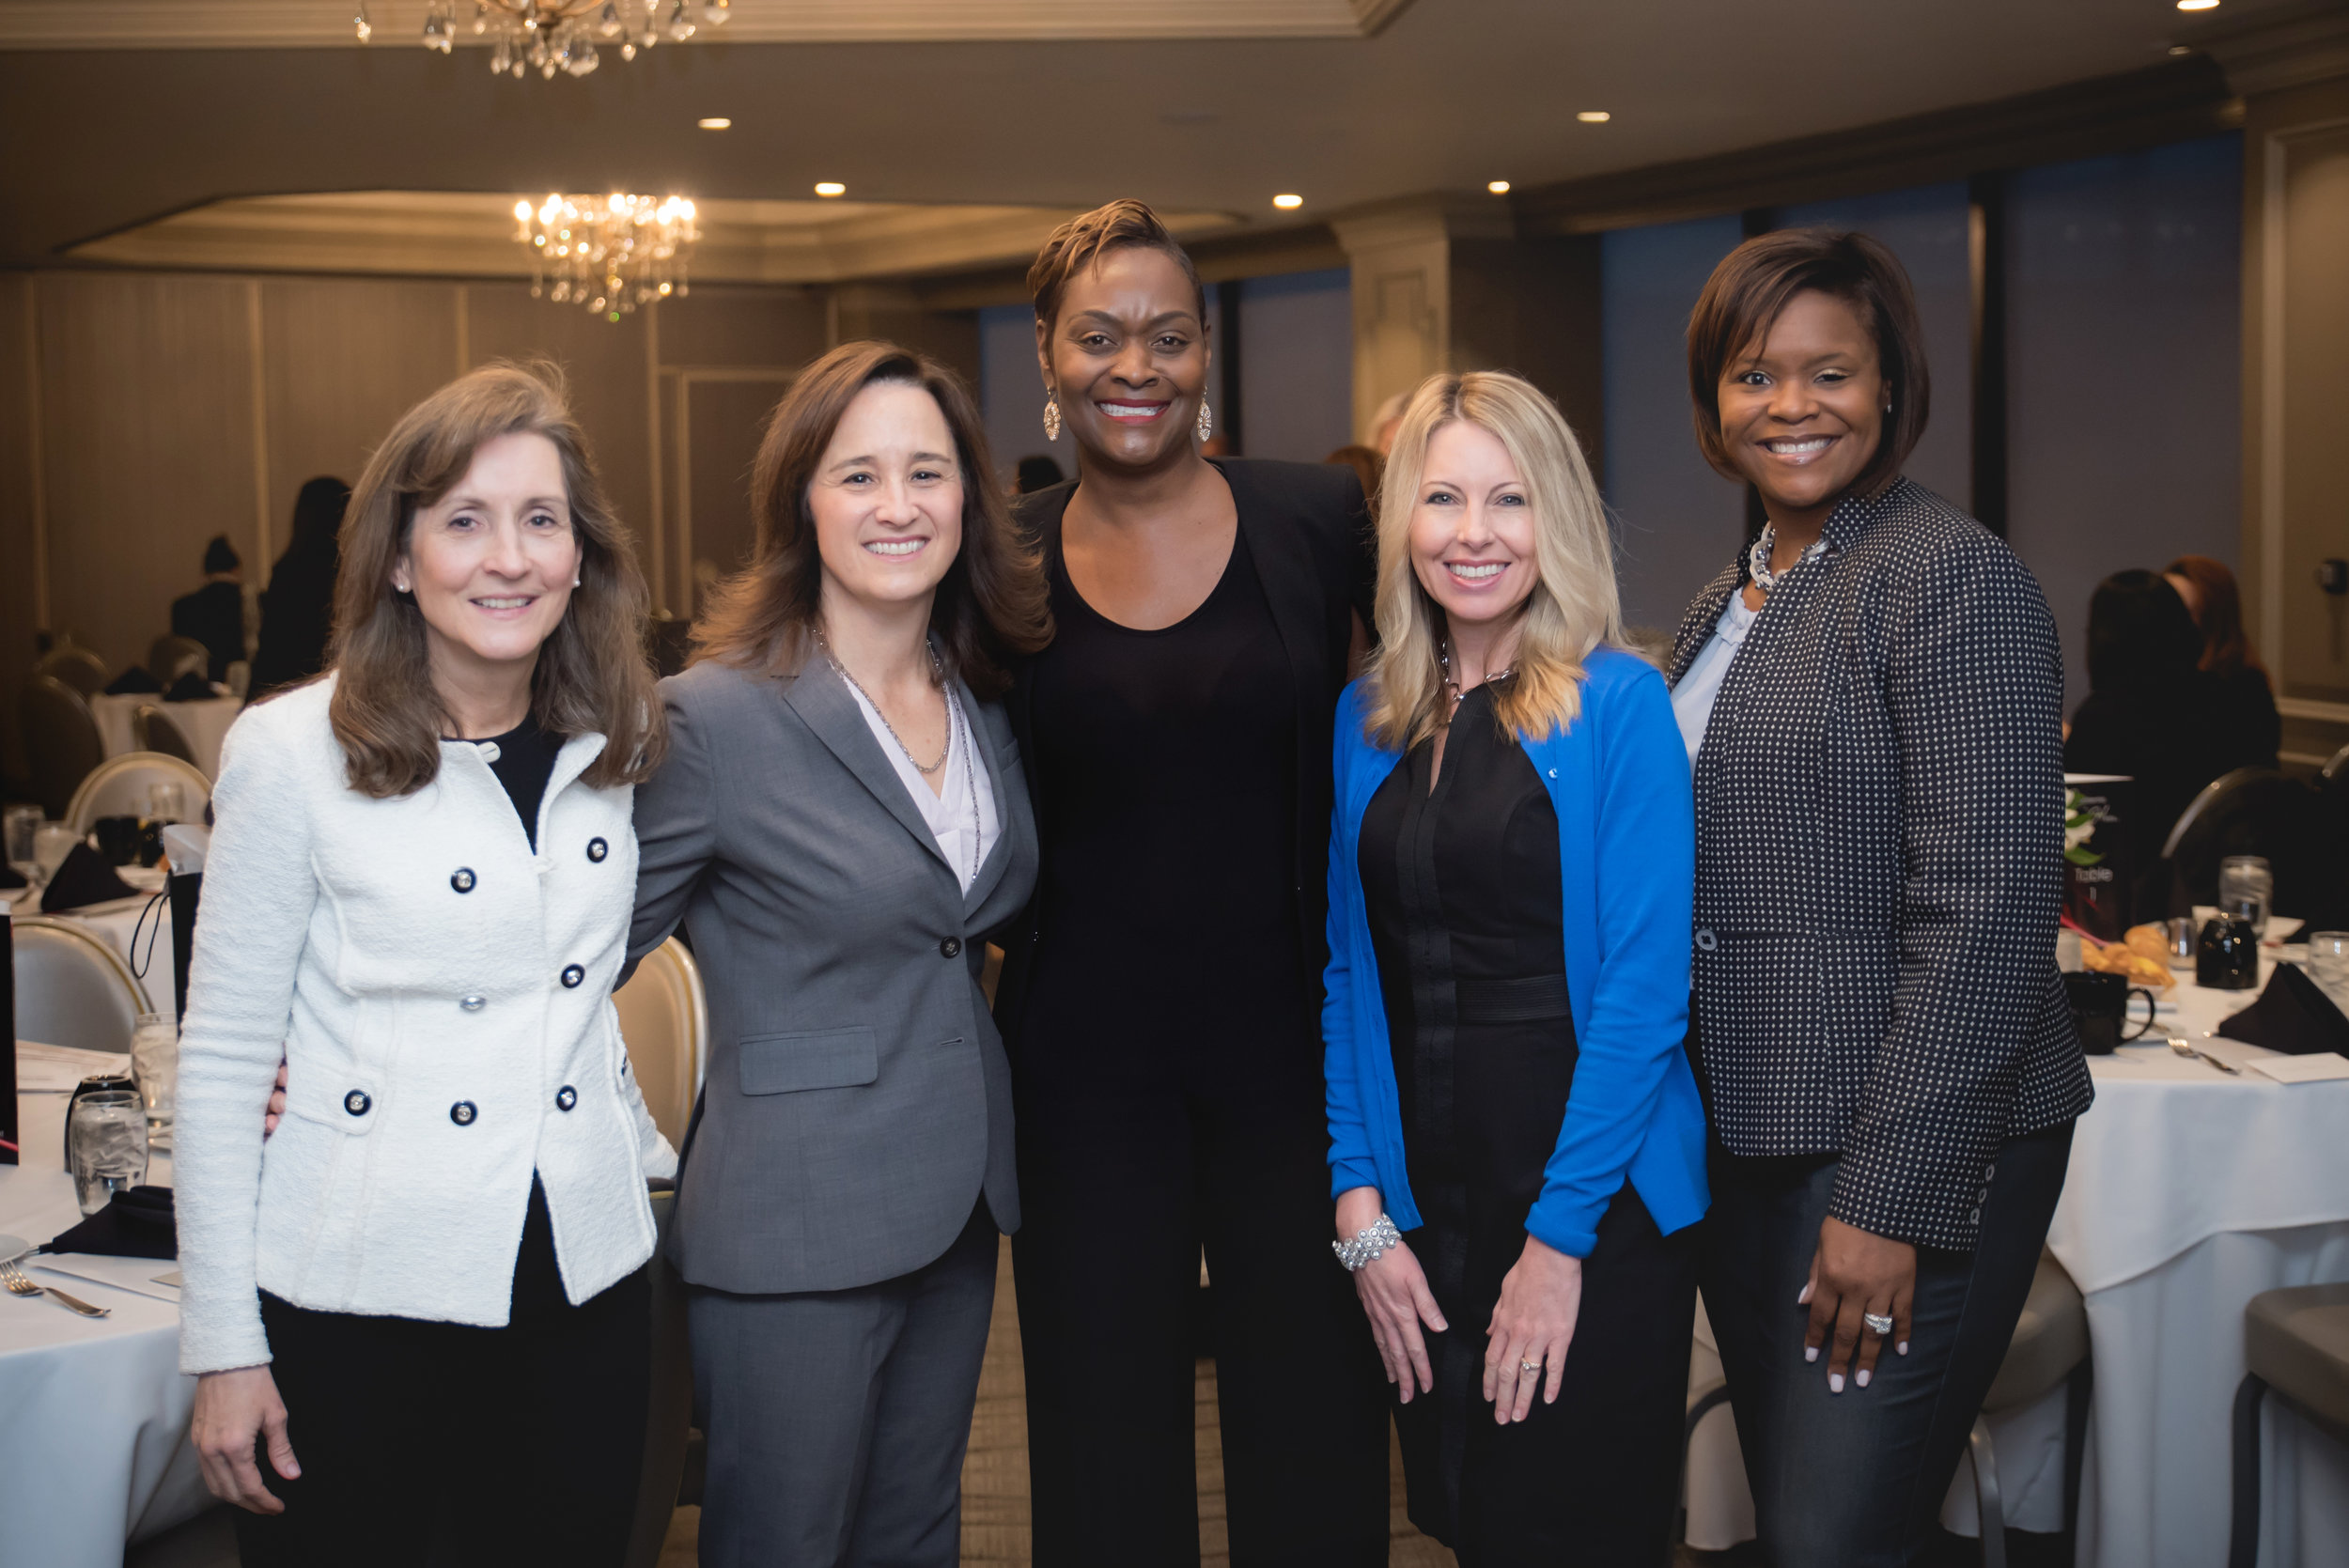 "Dr. Tammy Wong, CEO of Fostering Executive Leadership in Irvine, Lisa Haines, Vice President of Communications and Public Affairs for Disneyland Resort in Anaheim, Leadership in Heels Founder and CEO Scharrell Jackson, Lori Seal, CEO of Blytheco in Laguna Hills, and Lanän Clark, Vice President and Associate Market Manager of Merrill Lynch in Newport Beach, pose for a photo at Leadership in Heels ""Journey to the Top: The Juggling Act"" on Thursday, March 21, 2019 at the Center Club in Costa Mesa. They were featured on the event panel. / Photo by Kait McKay Photography"